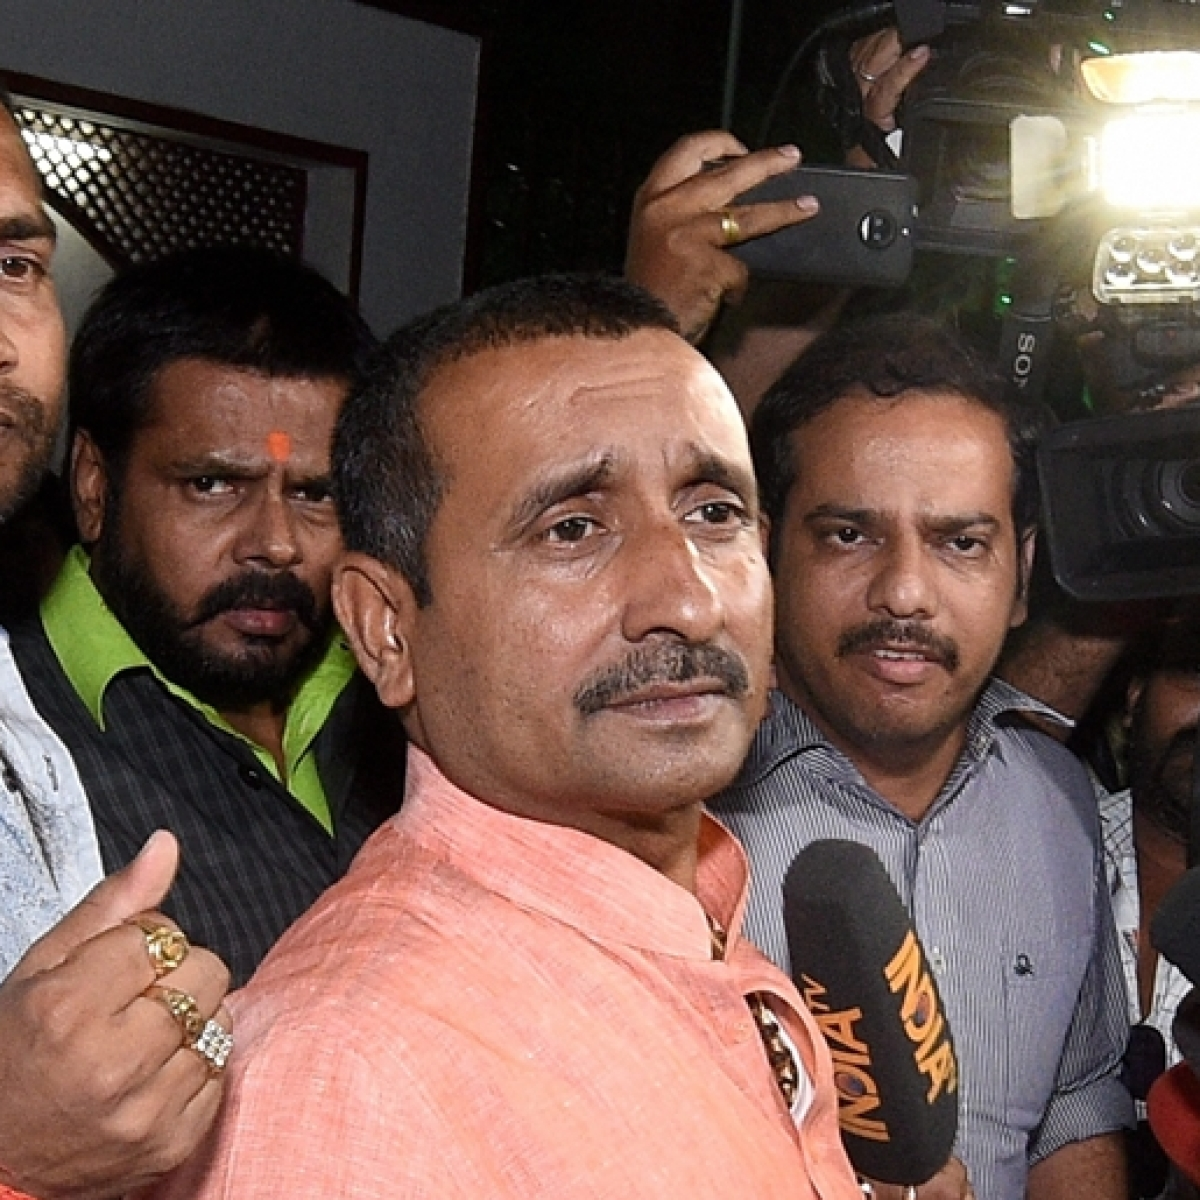 Unnao case: Court frames rape charges against expelled BJP MLA Kuldeep Sengar